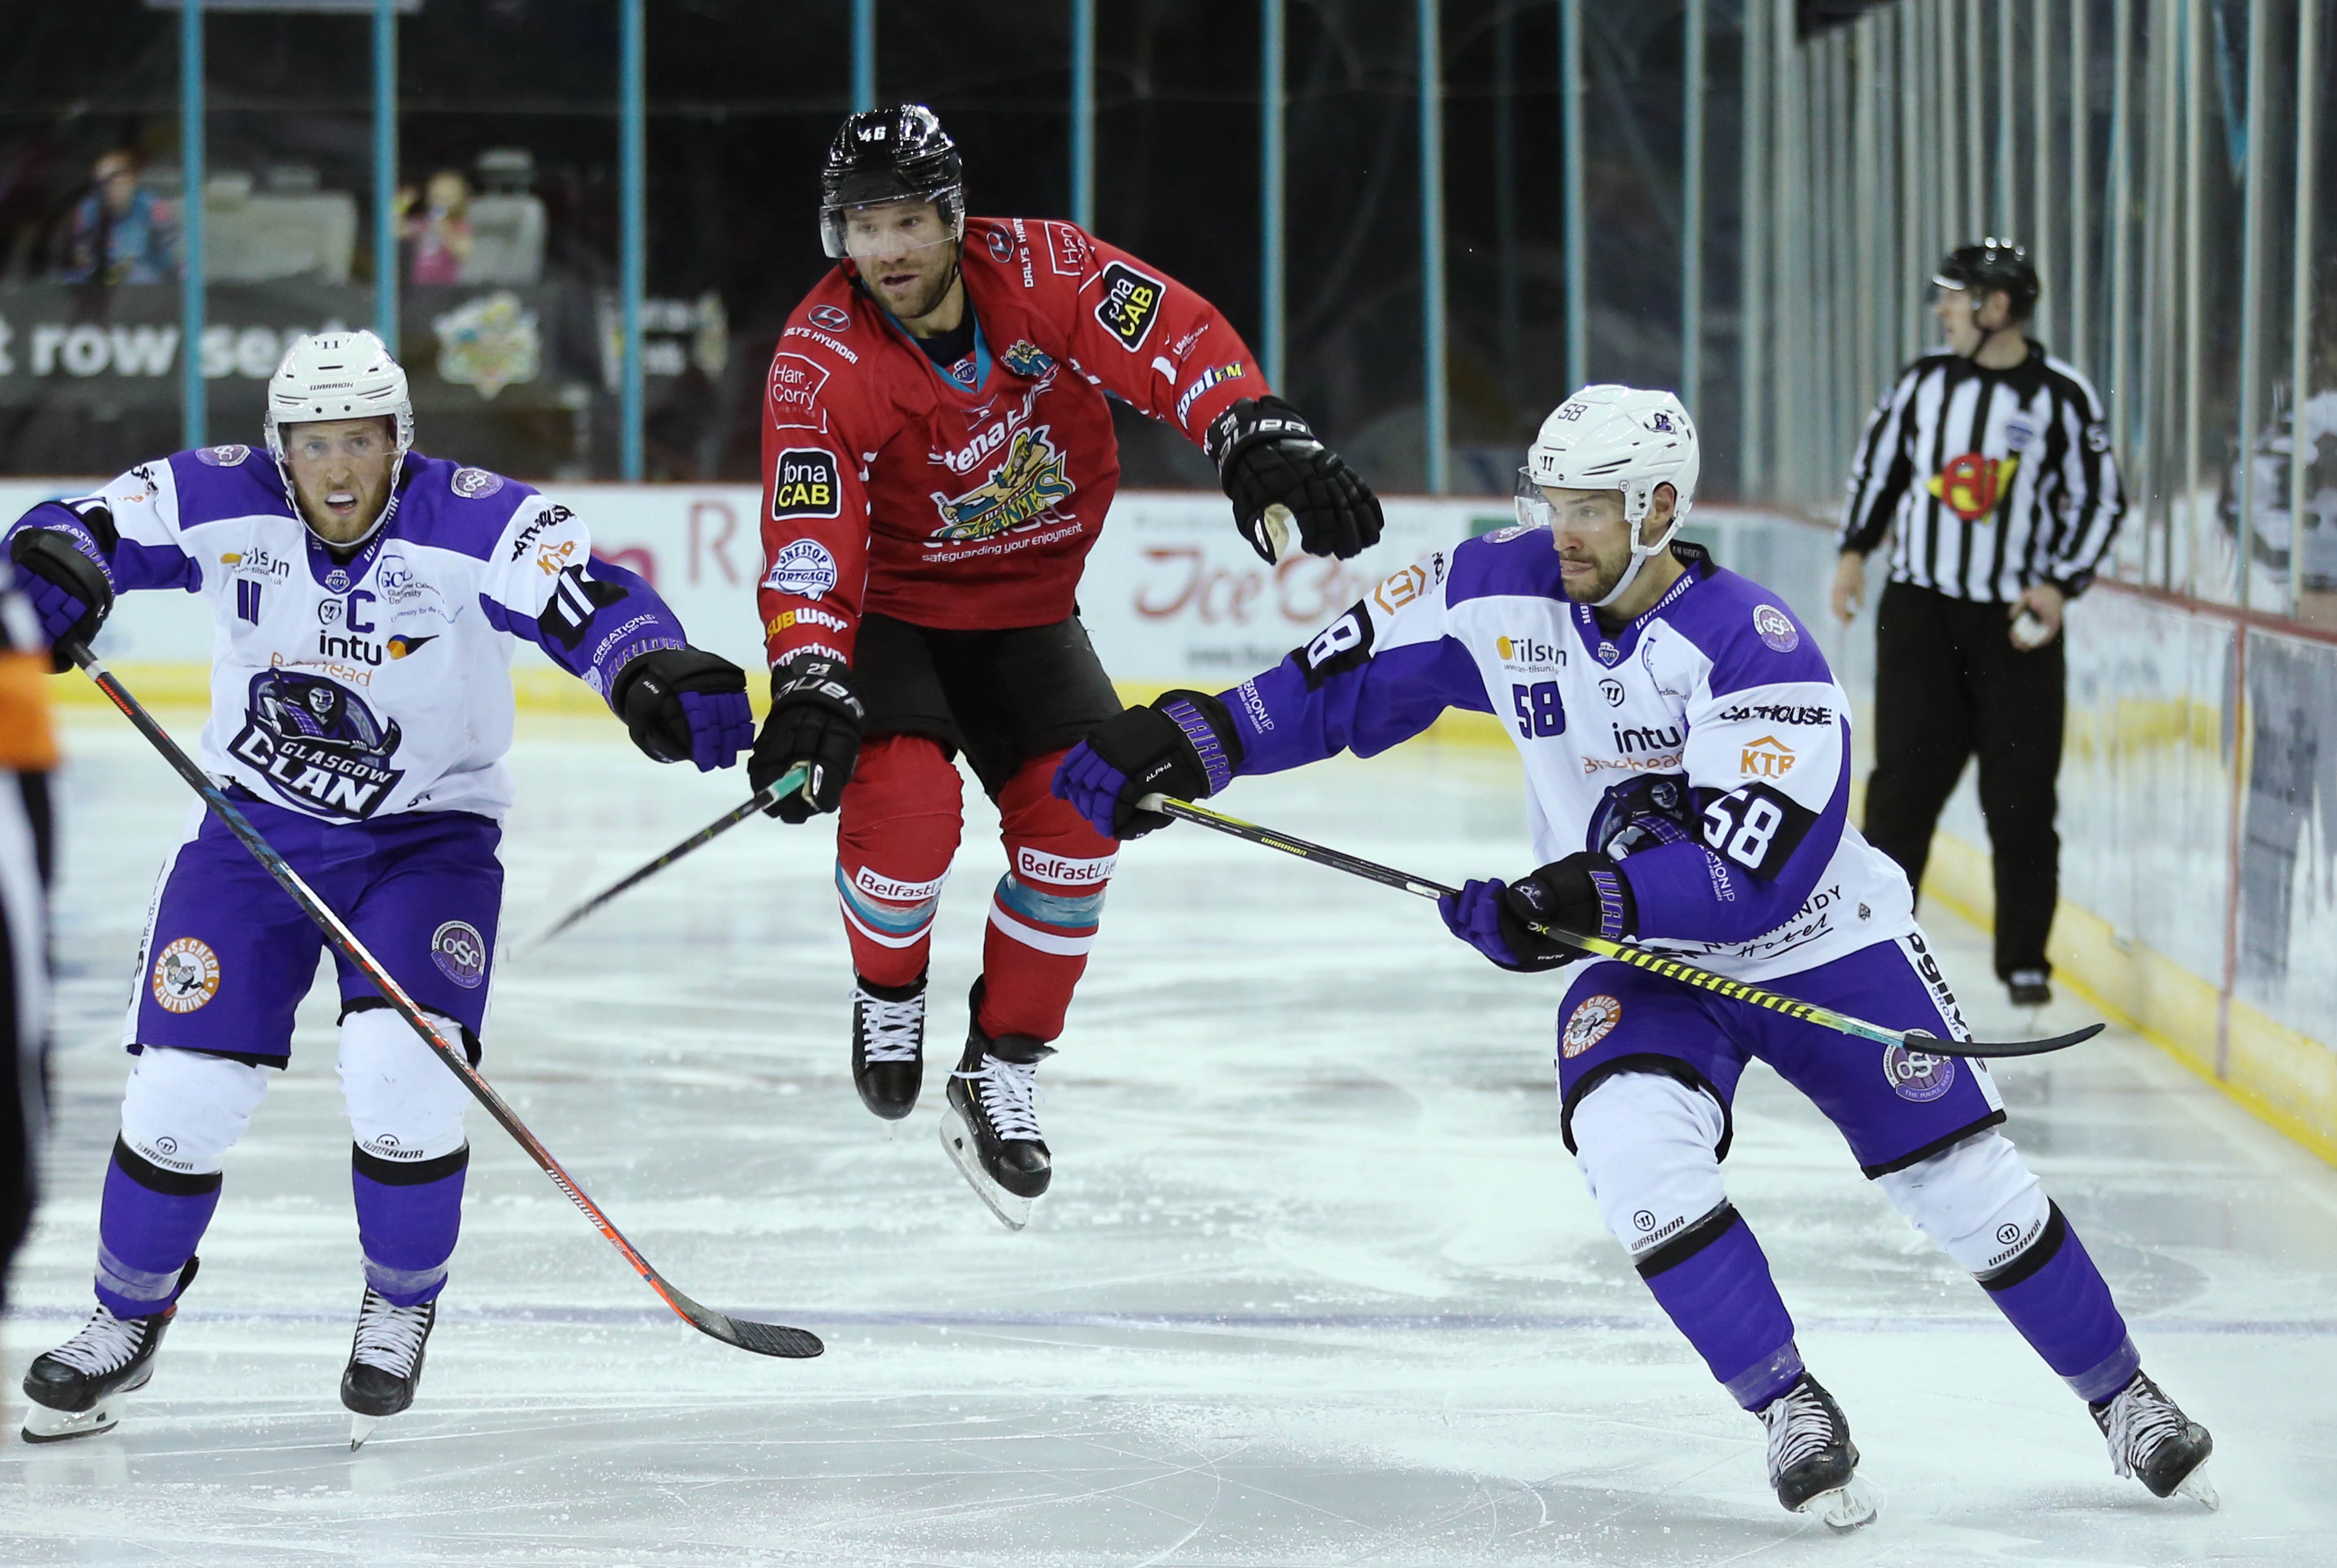 Giants Vs Clan_027